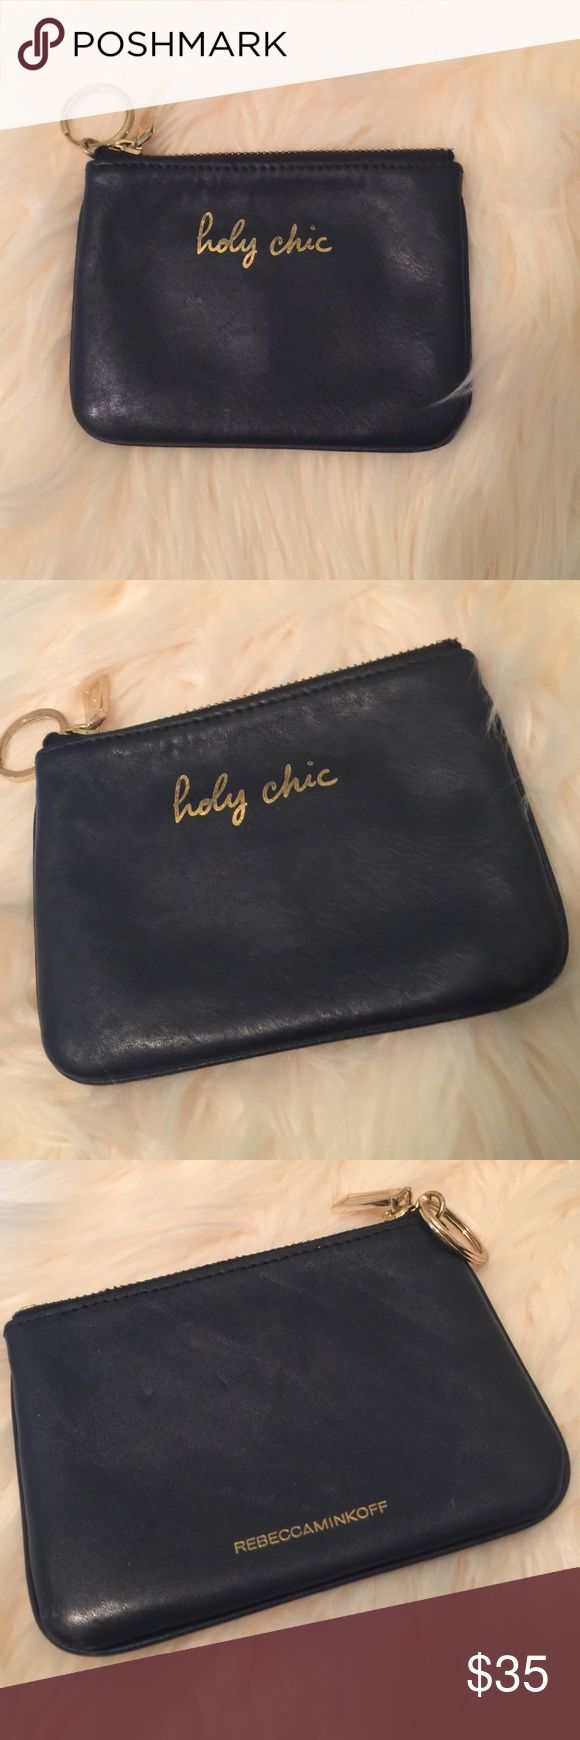 """Rebecca Minkoff Navy Cory pouch """"holy chic"""" Dark navy pouch with gold lettering and gold hardware. In excellent condition- used a few times and then put away. Only wear is seen on the gold lettering; you can see slight fading. Comes with a key ring you attach keys! 5.5 x 4 inches. Rebecca Minkoff Bags Wallets"""